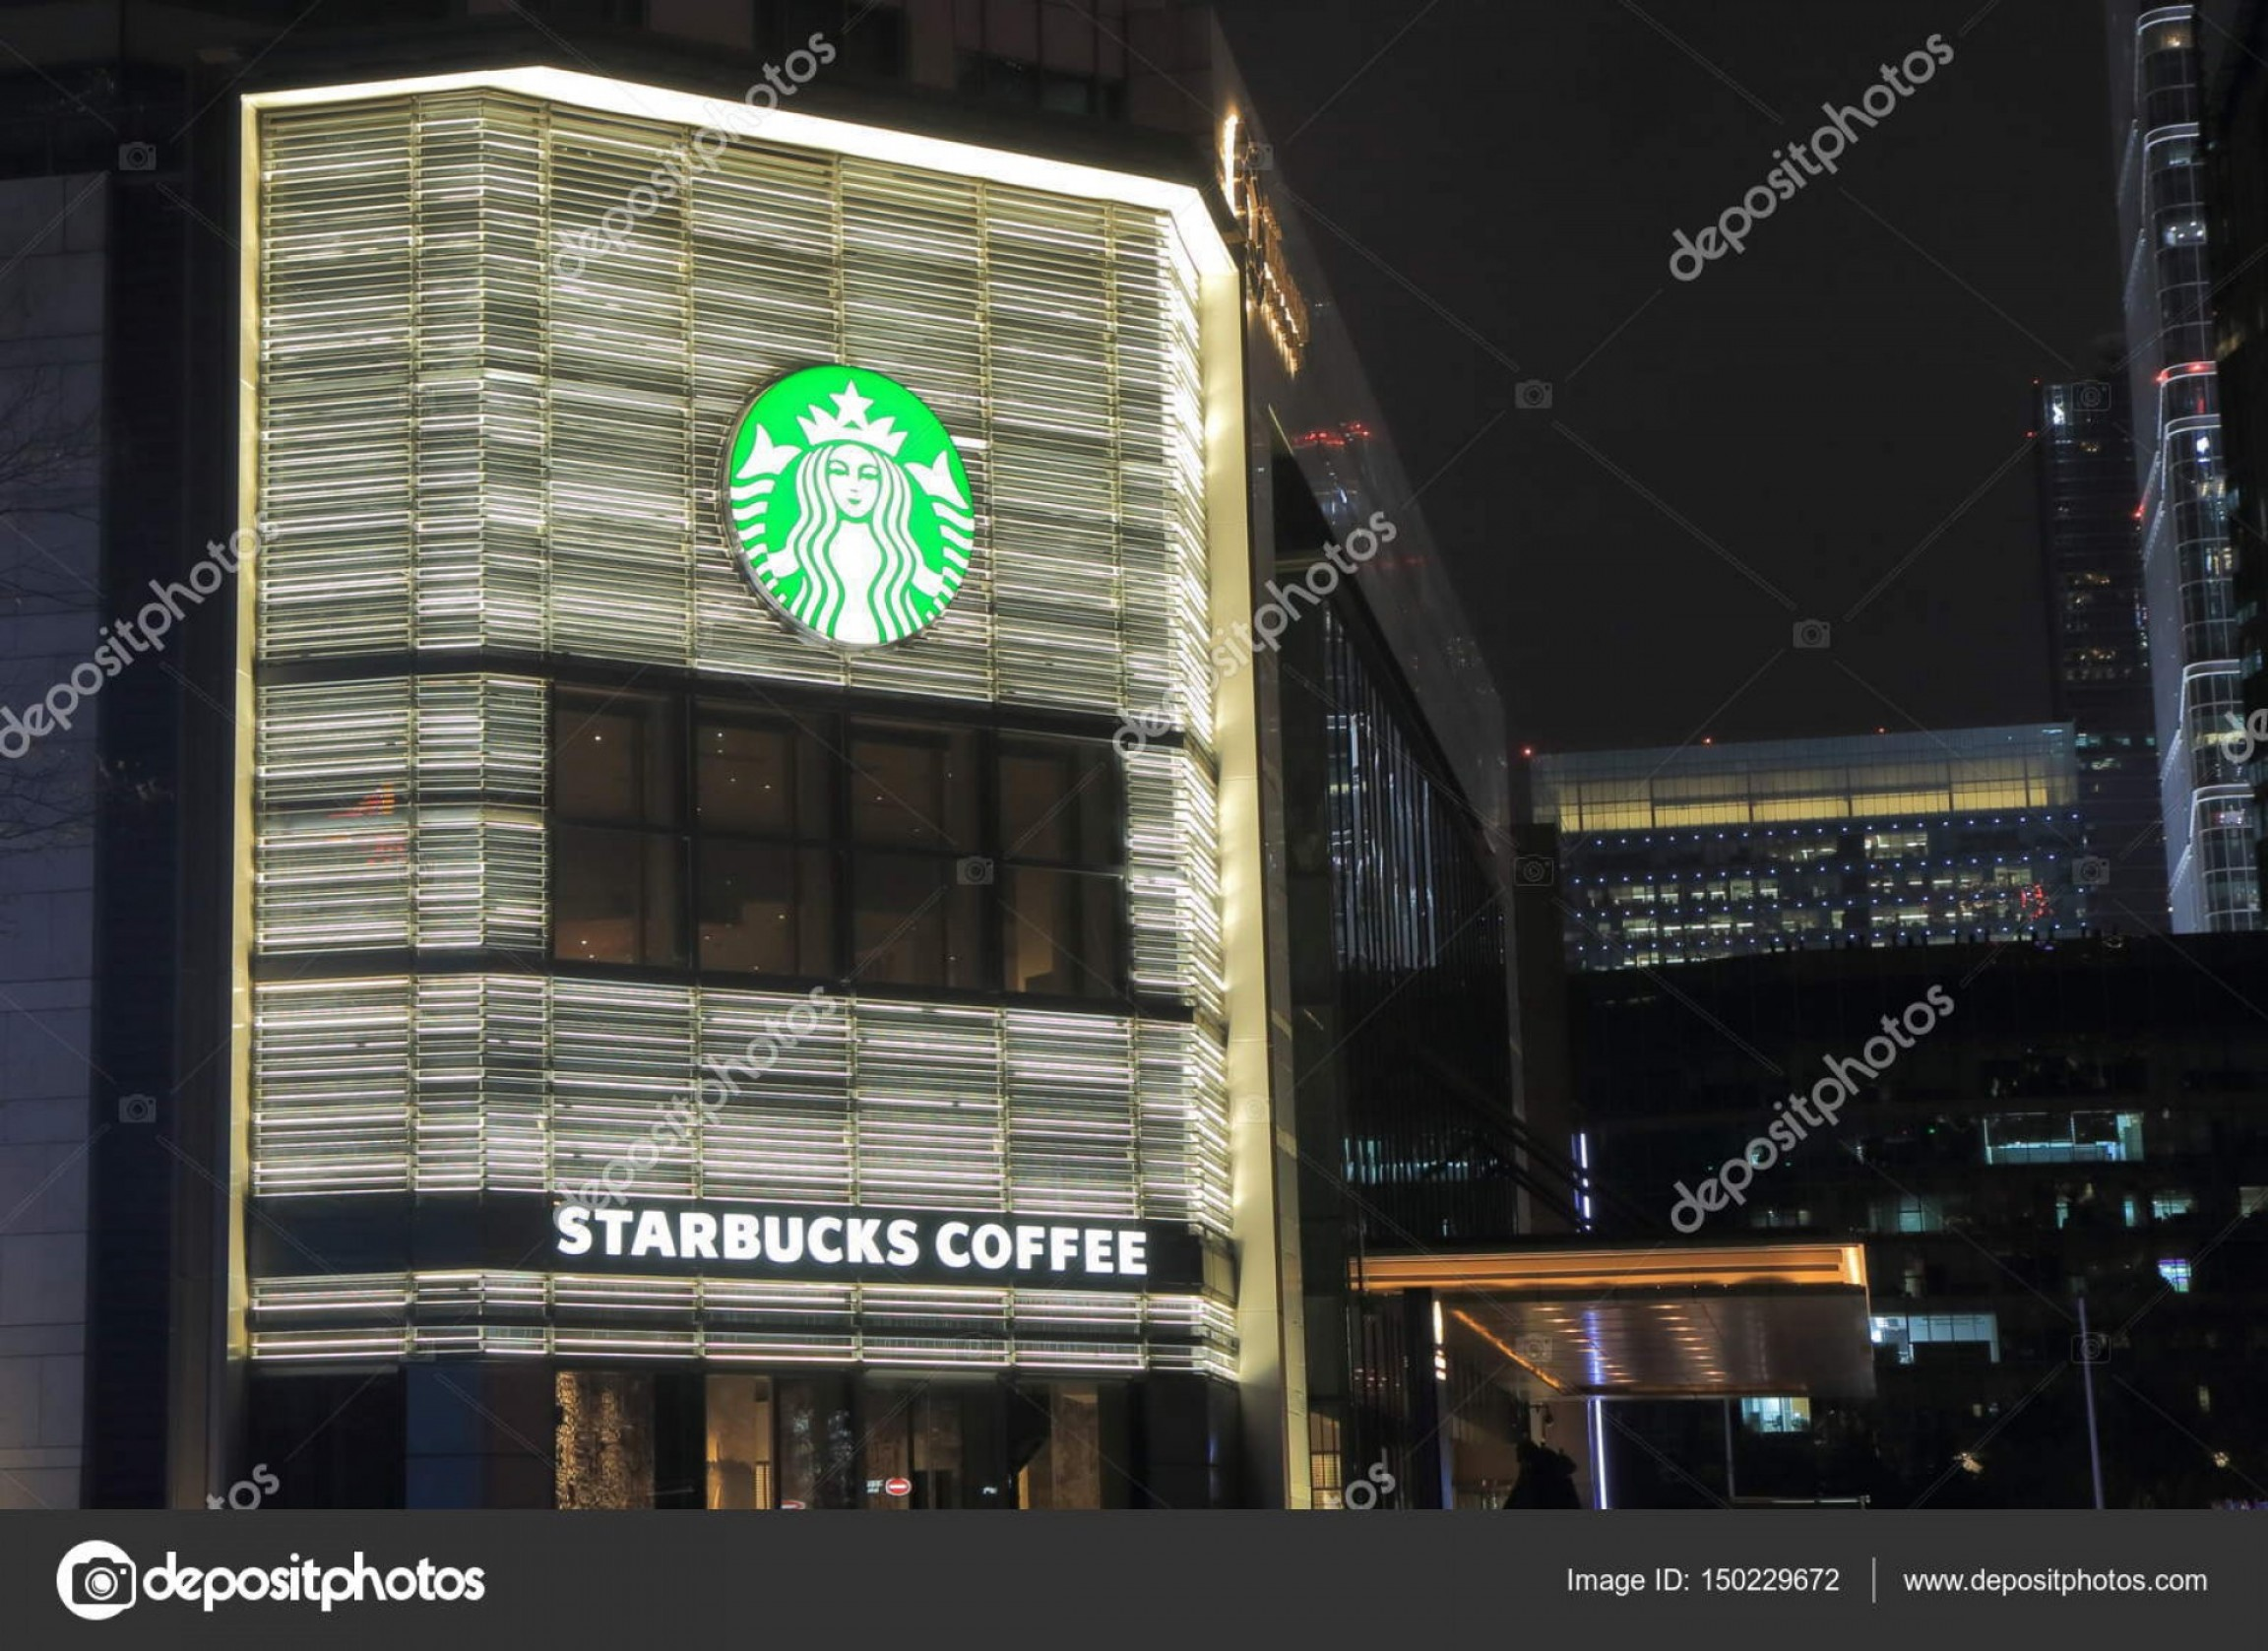 Starbucks China Vector: Stock Photo Starbucks Coffee Shop Beijing China